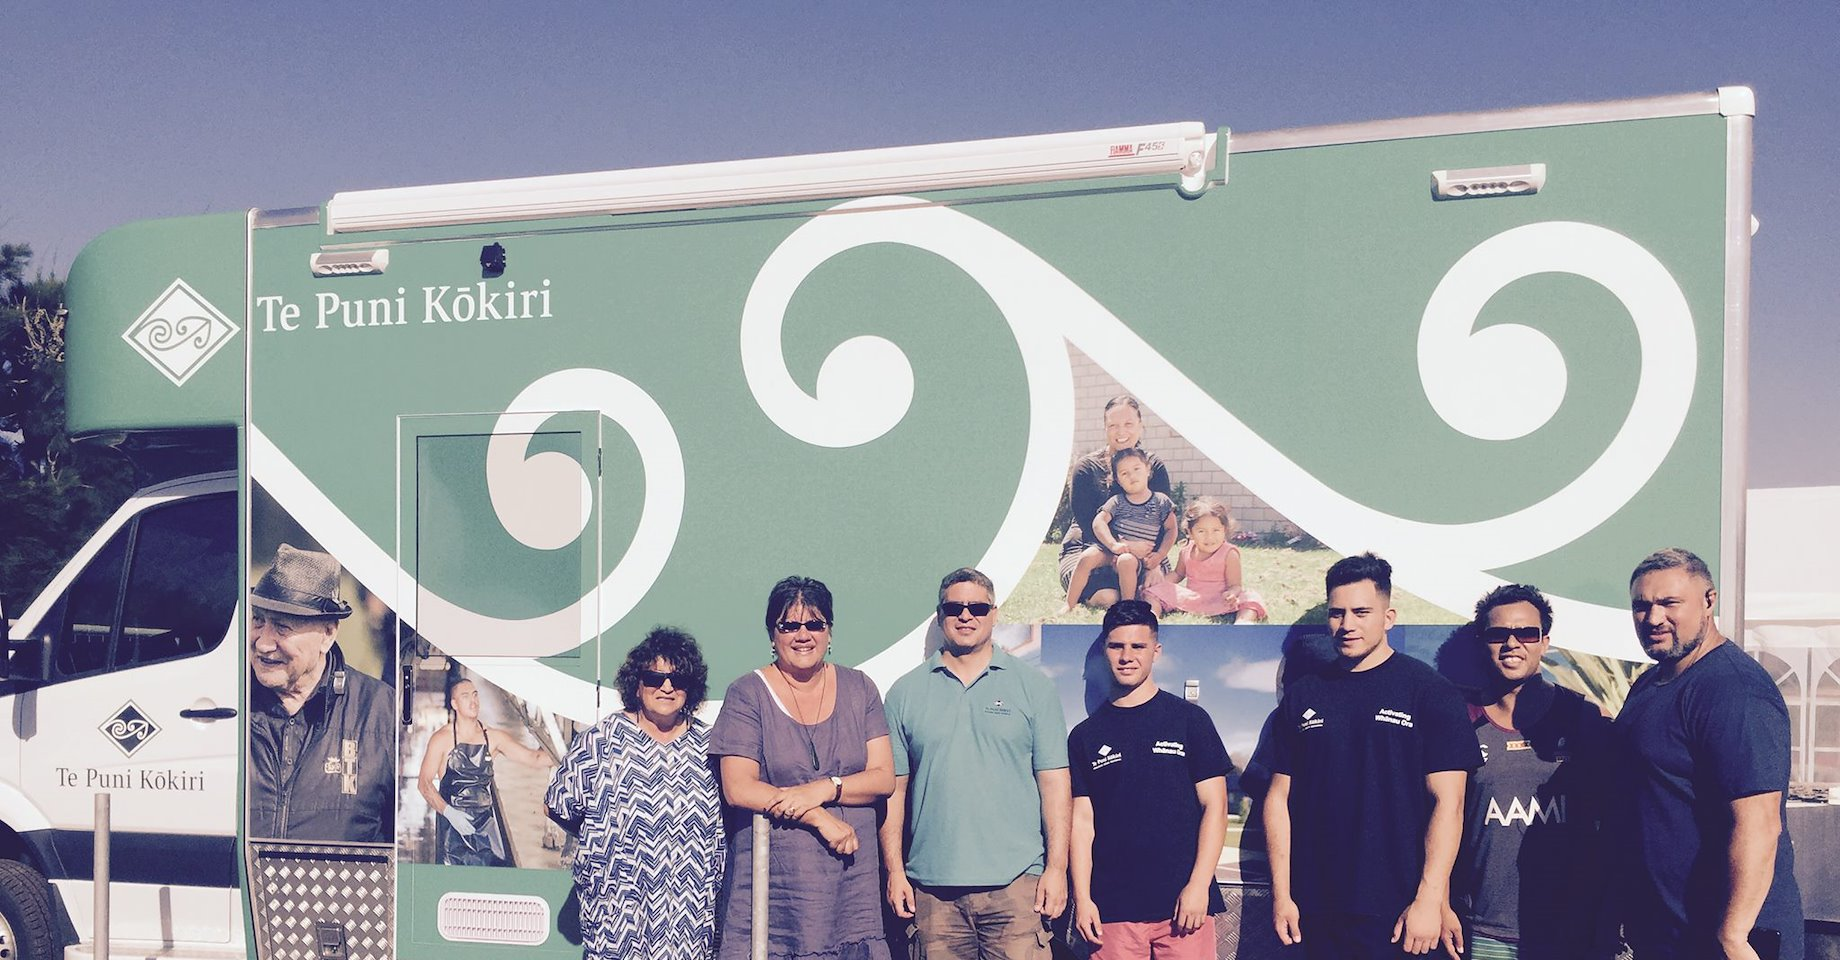 Michelle Hippolite, Toihautū | Chief Executive and Te Puni Kōkiri staff in front of the mobile service